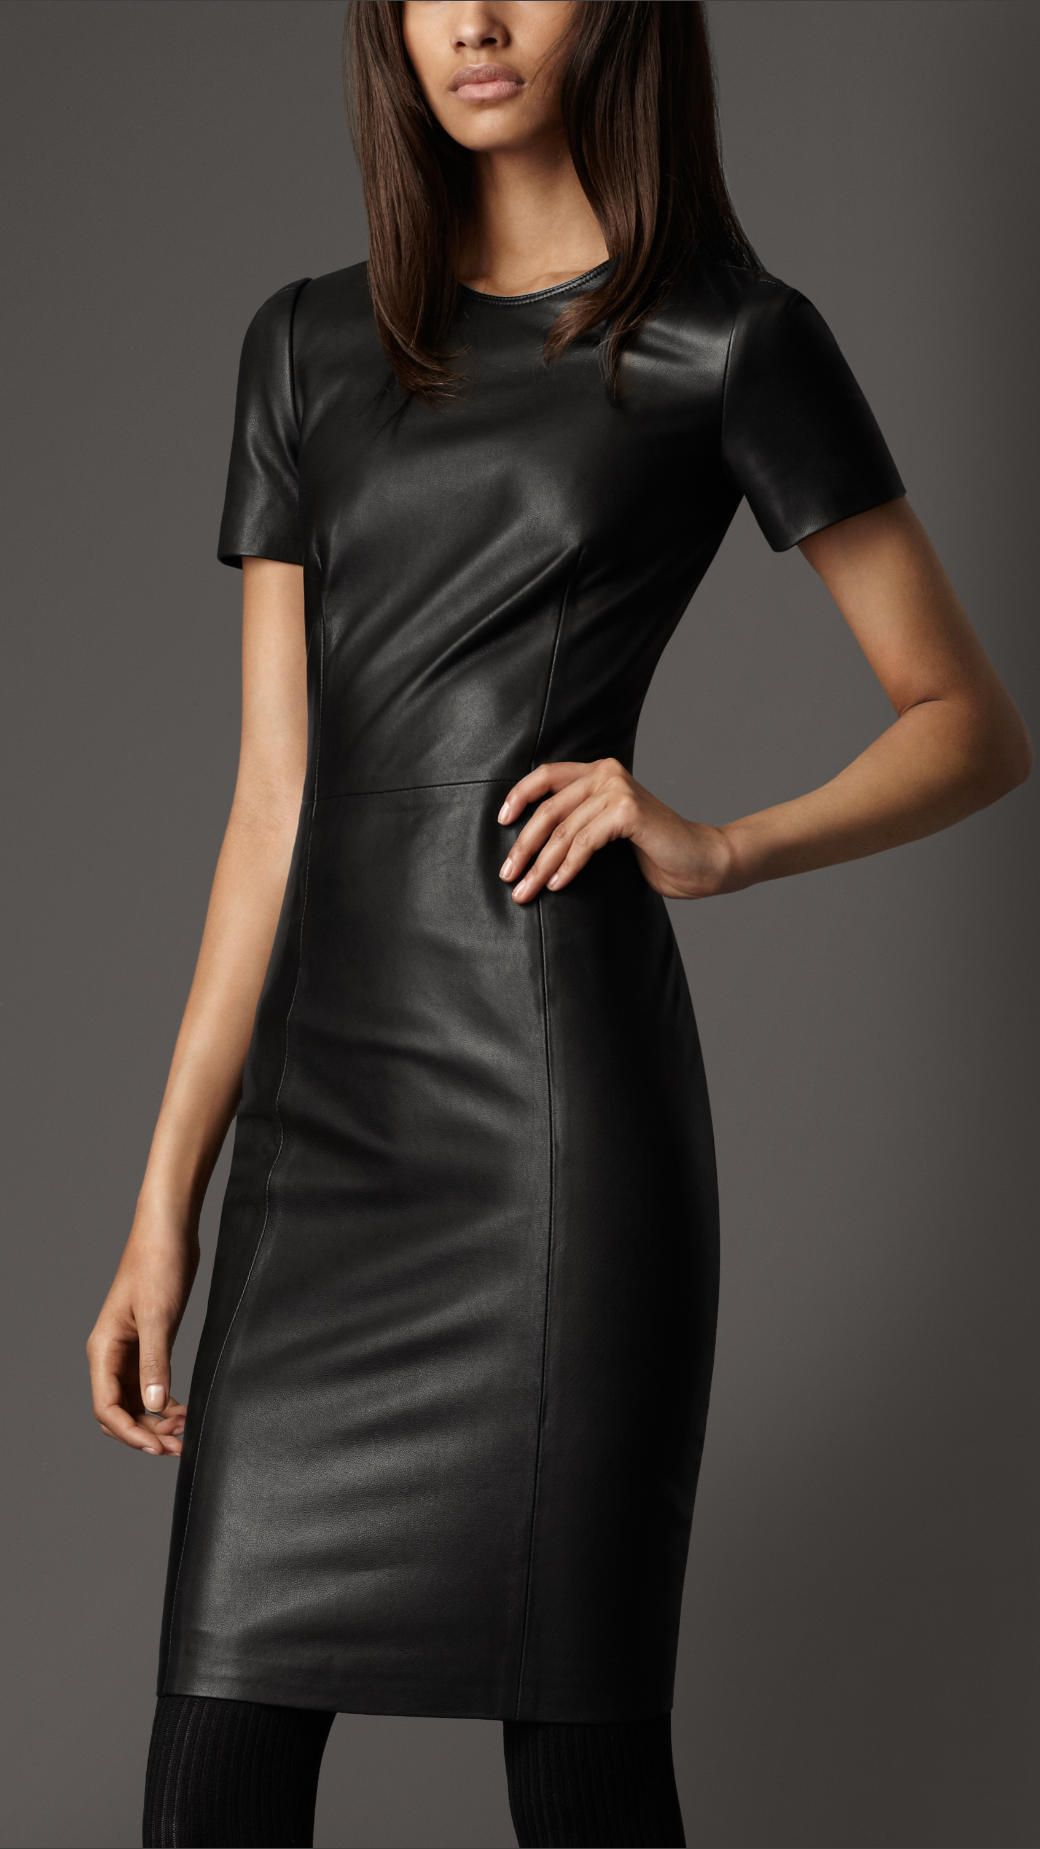 Burberry FITTED LEATHER DRESS Looking Good Pinterest